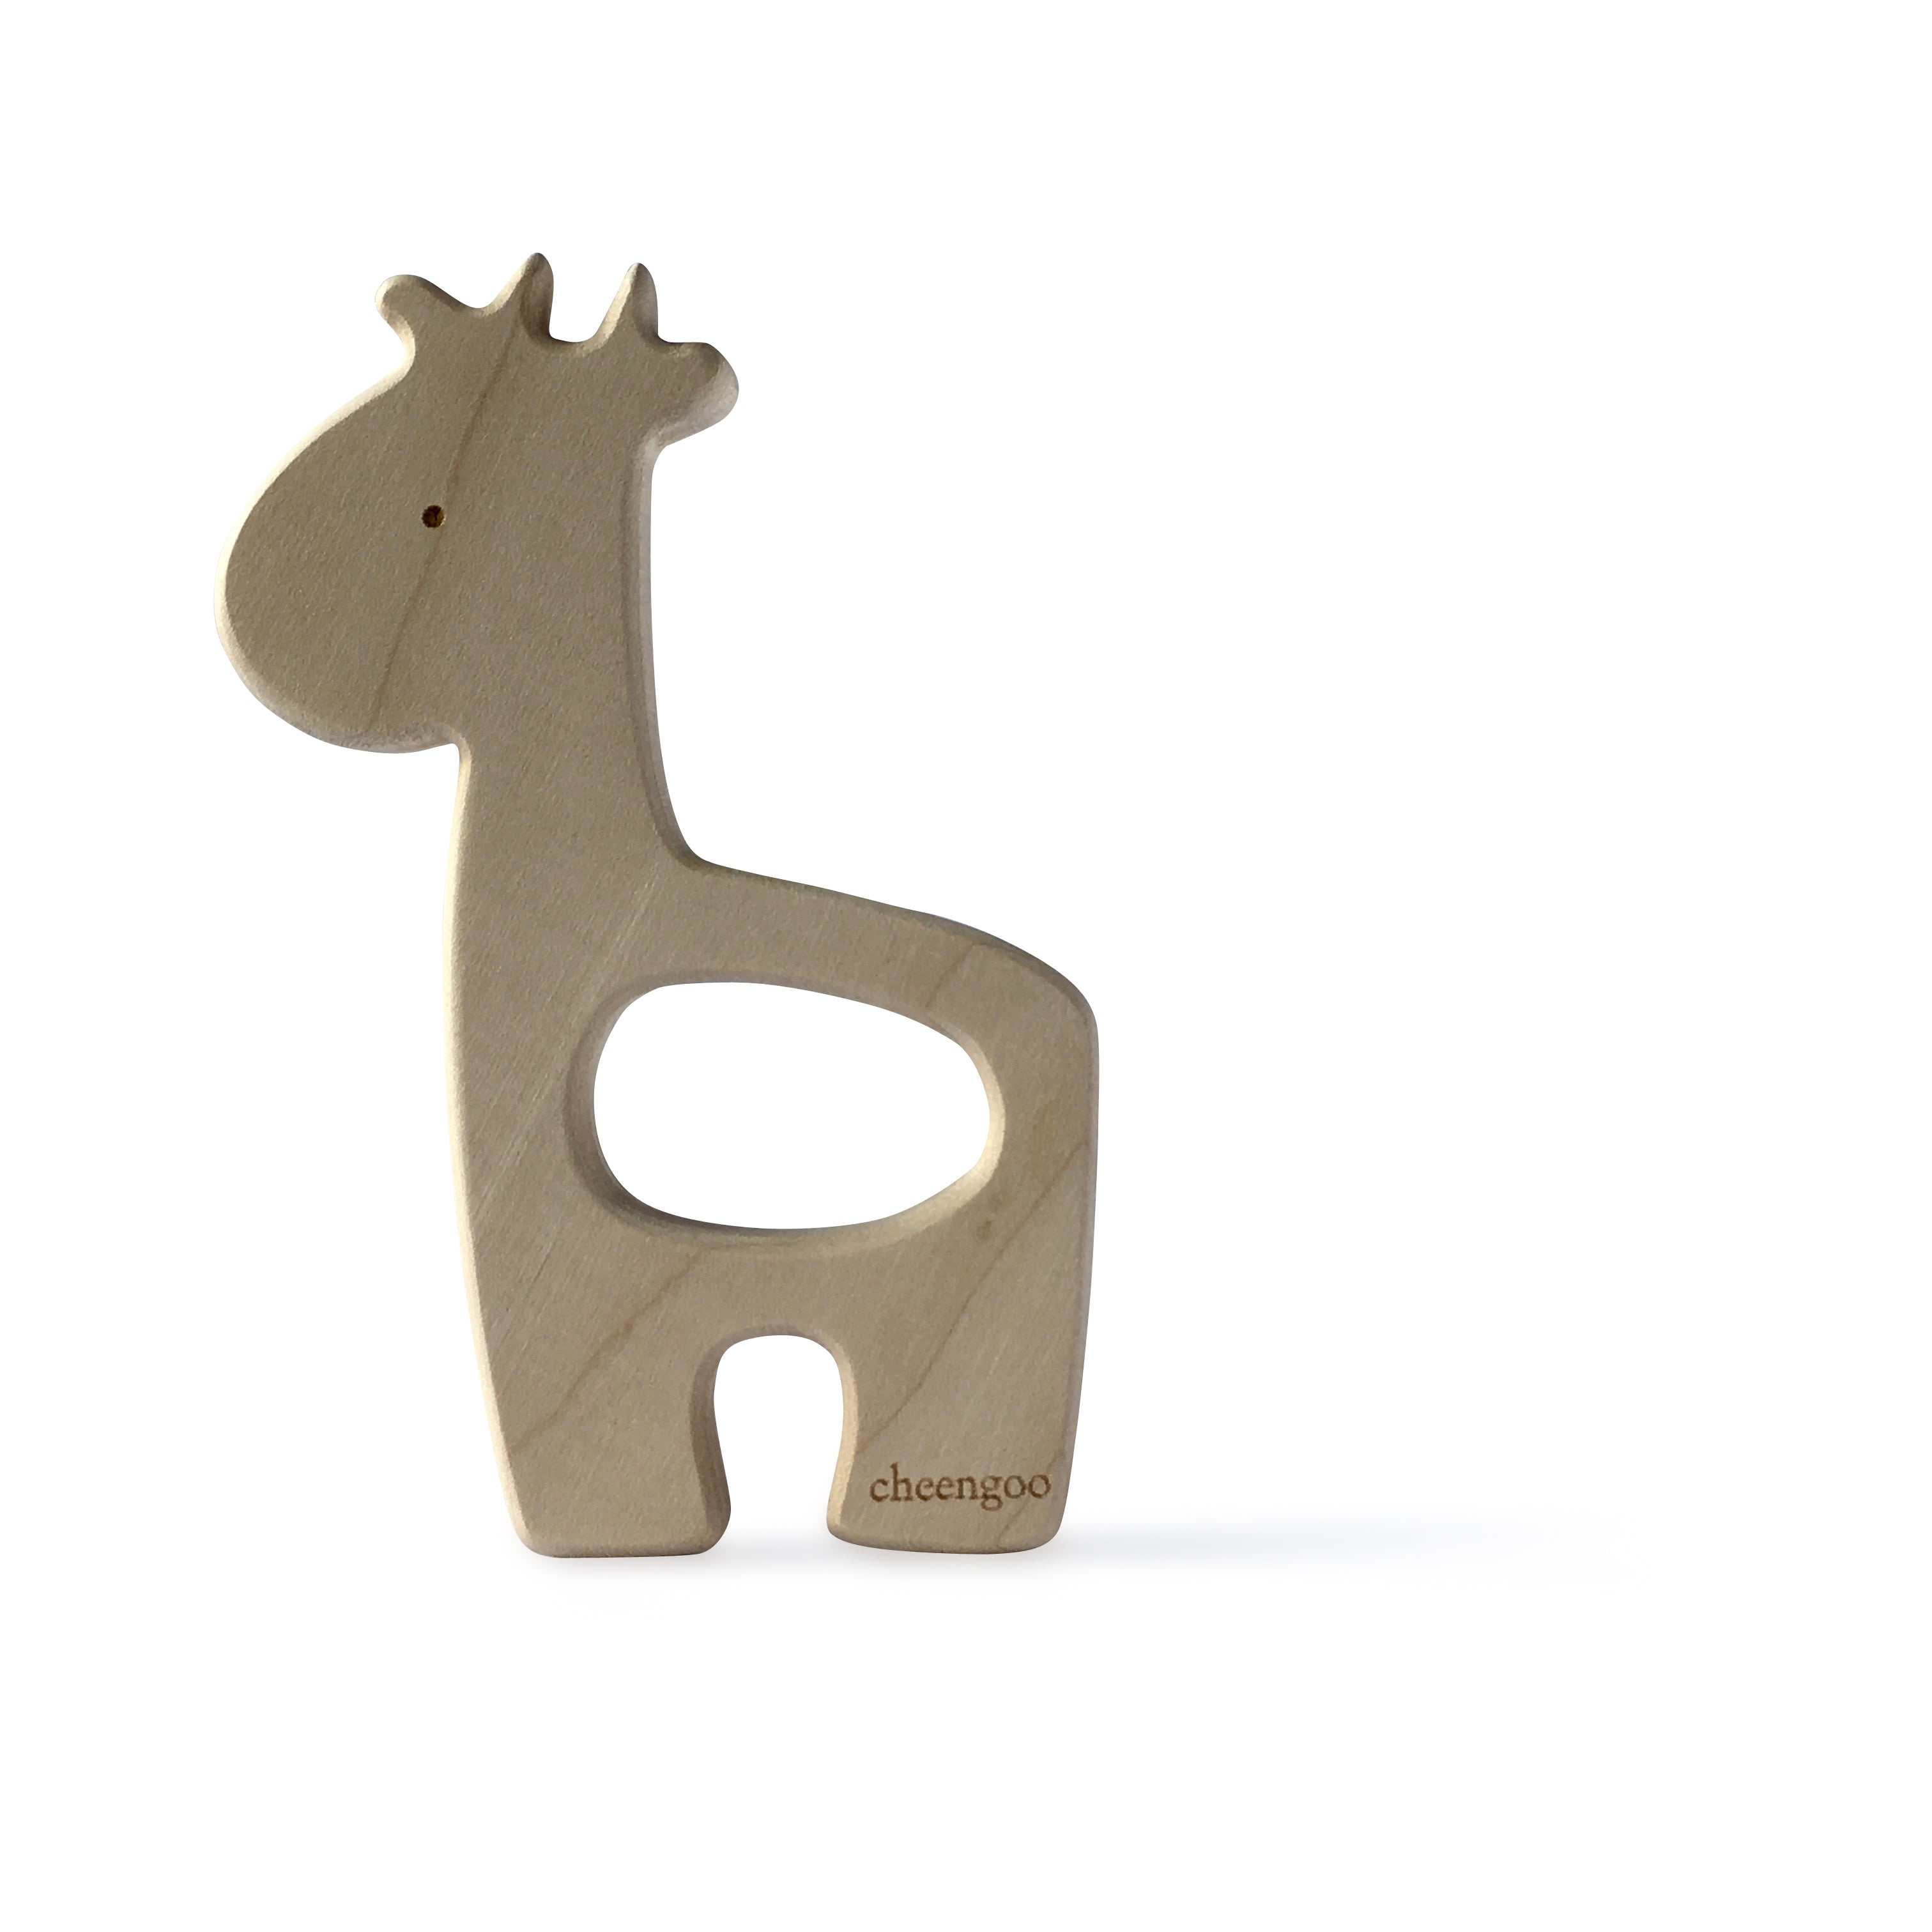 I AM BCO conscious Lifestyle Giraffe Timber Teether Cheengoo Ethical and eco friendly Natural Maple